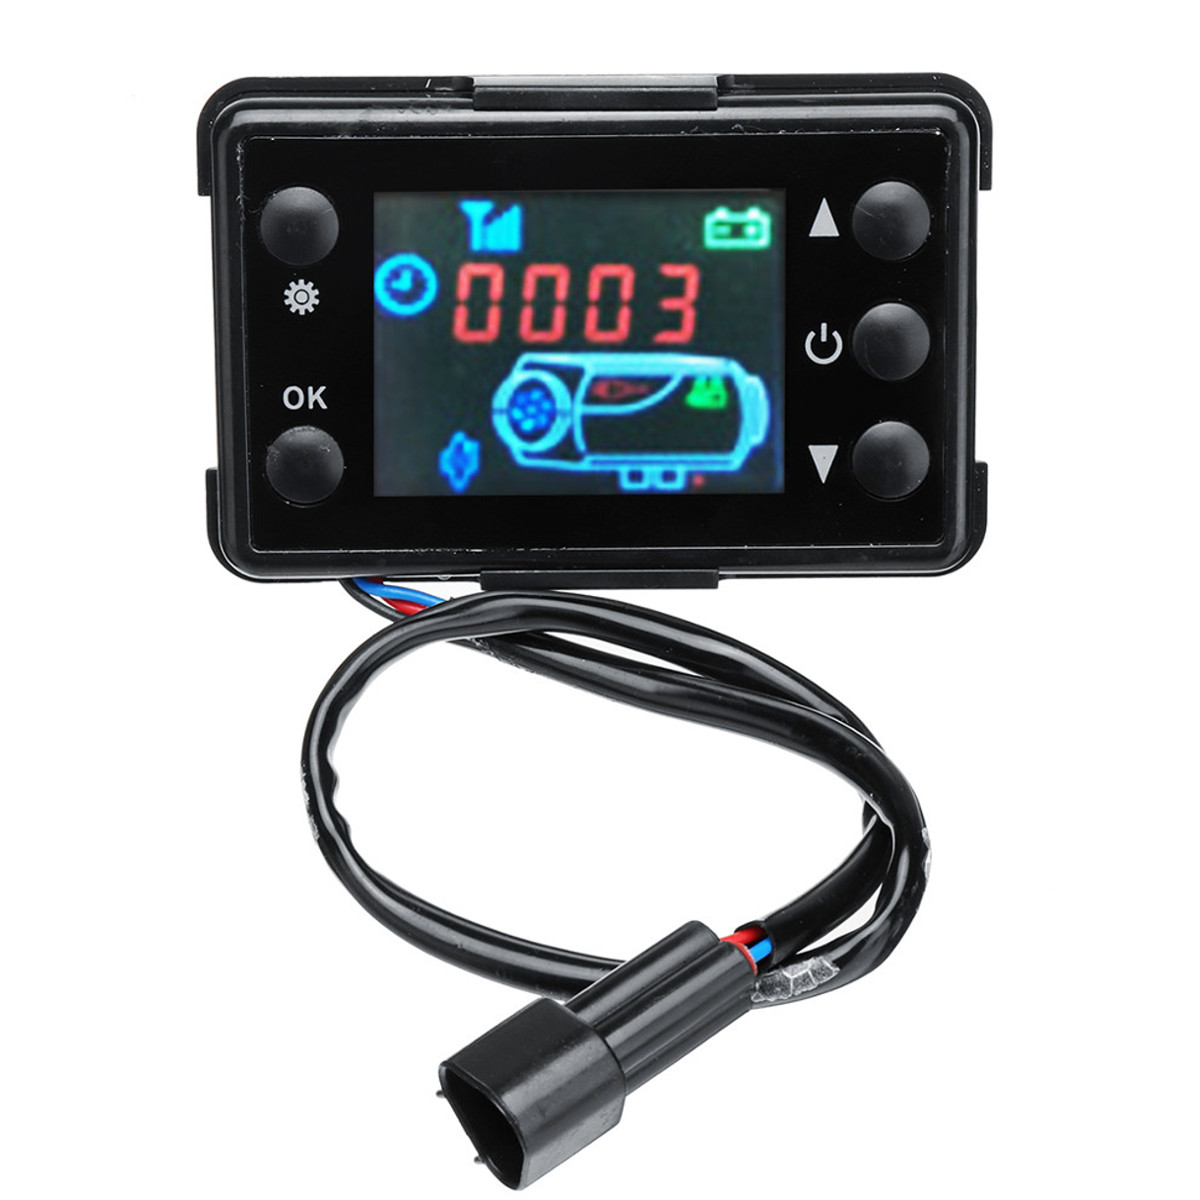 Electric Vehicle Parts Controllers 12v/24v 3/5kw Lcd Monitor Parking Heater Switch Car Heating Device Controller Universal For Car Track Air Heater Skilful Manufacture